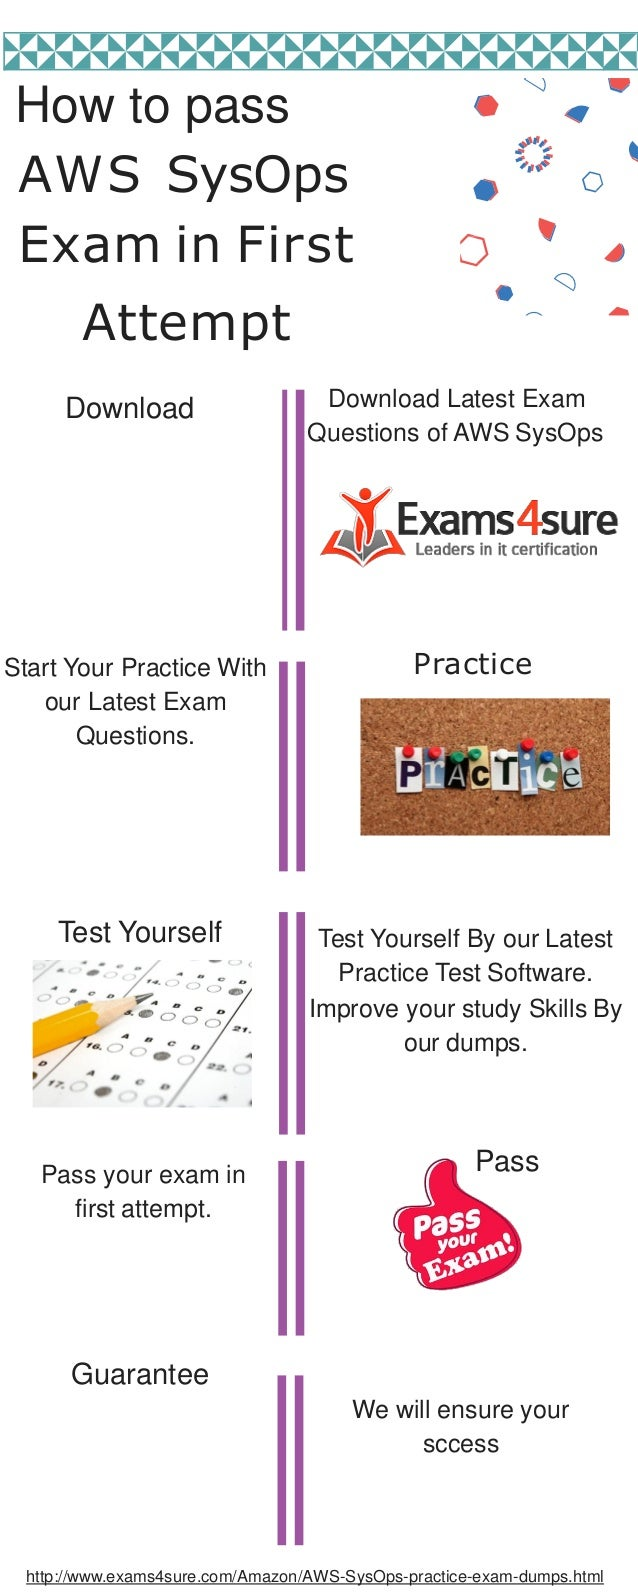 Aws sysops exam questions how to pass aws sysops exam in first attempt download download latest exam questions of aws 1betcityfo Images